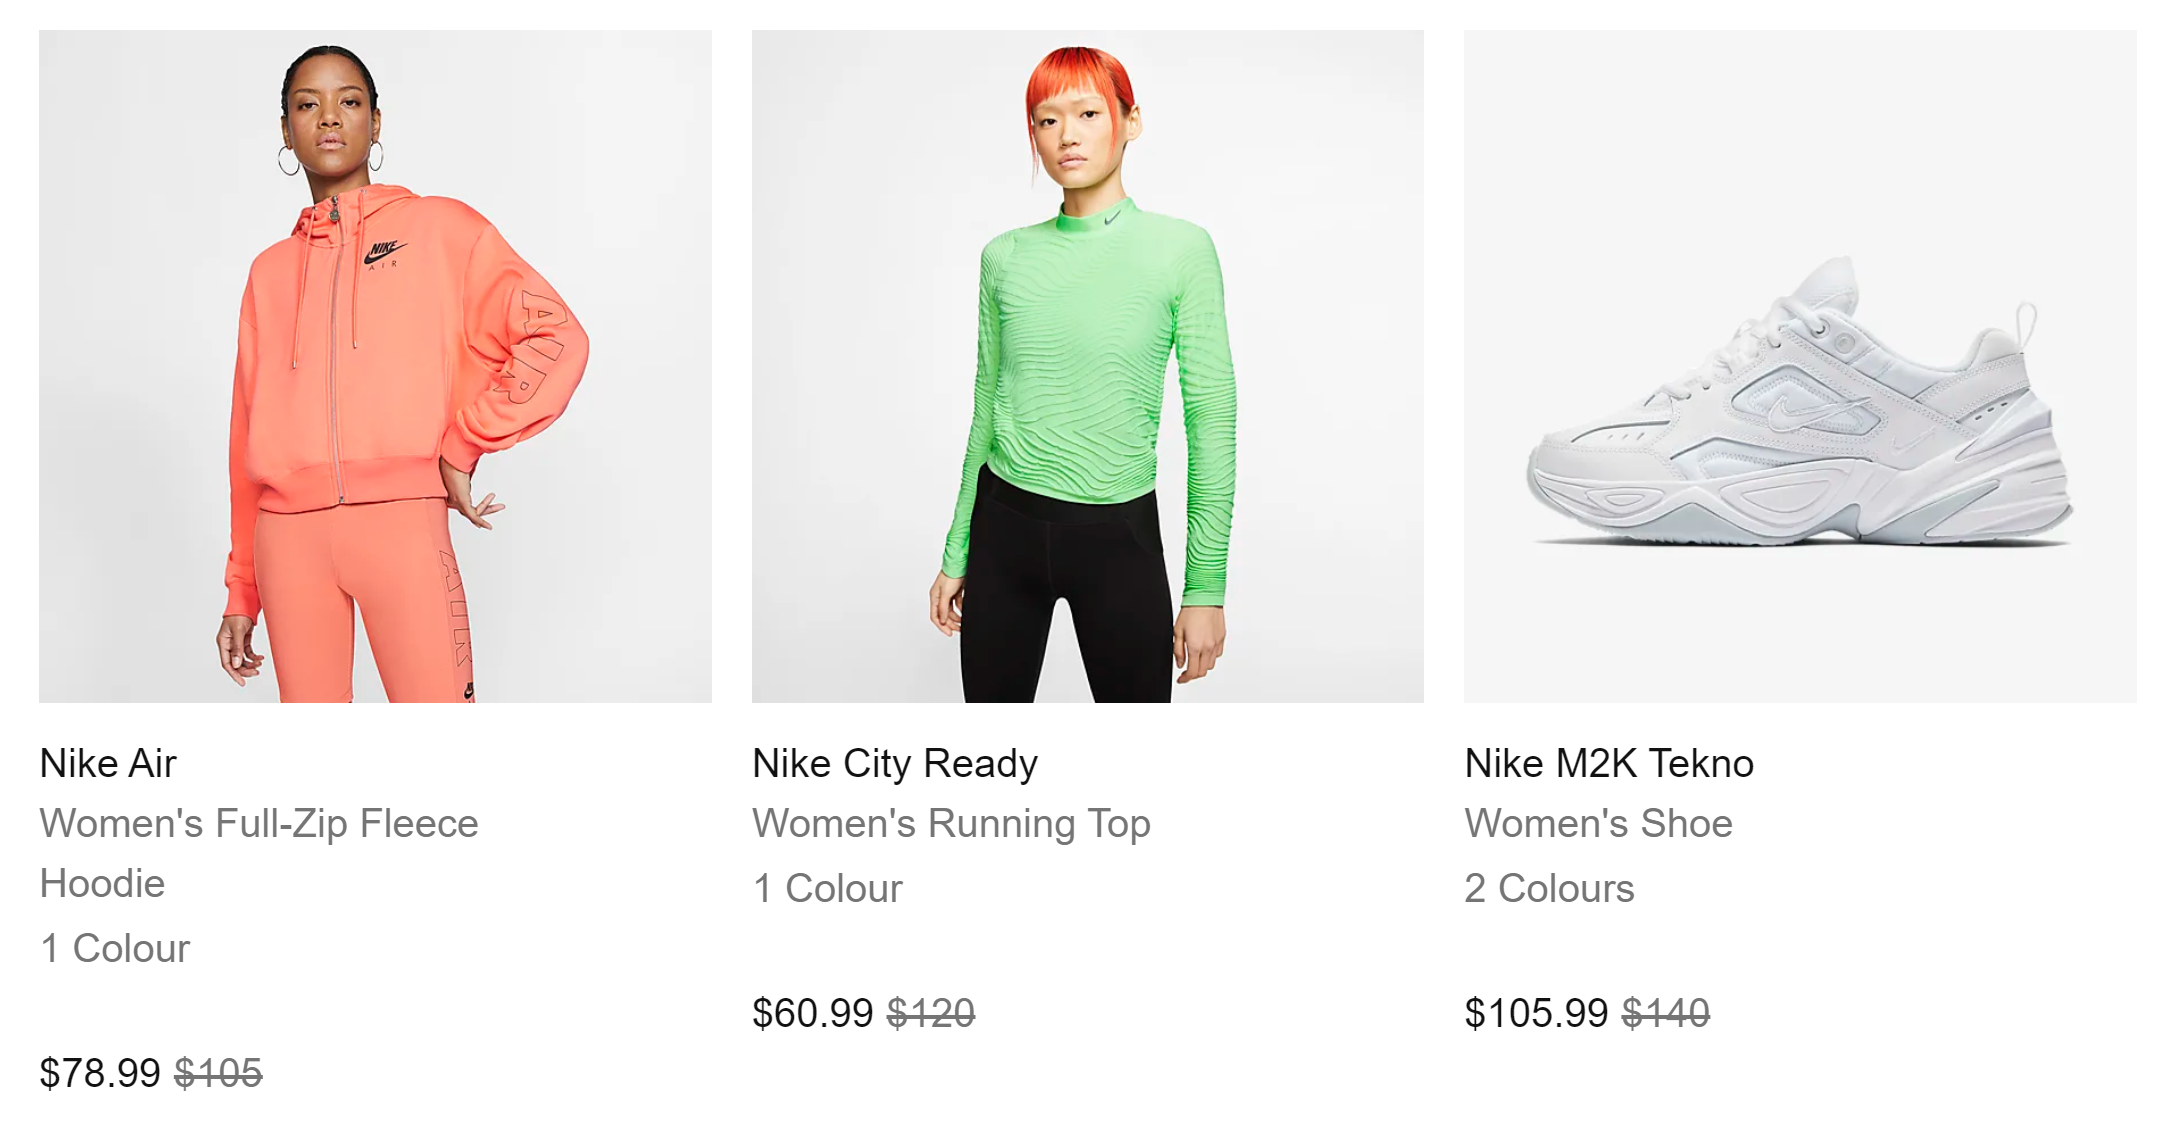 nikes-hot-selling-apparel-shoes-are-as-low-as-45-percent-off-6999-for-running-shoes-2020-8-28